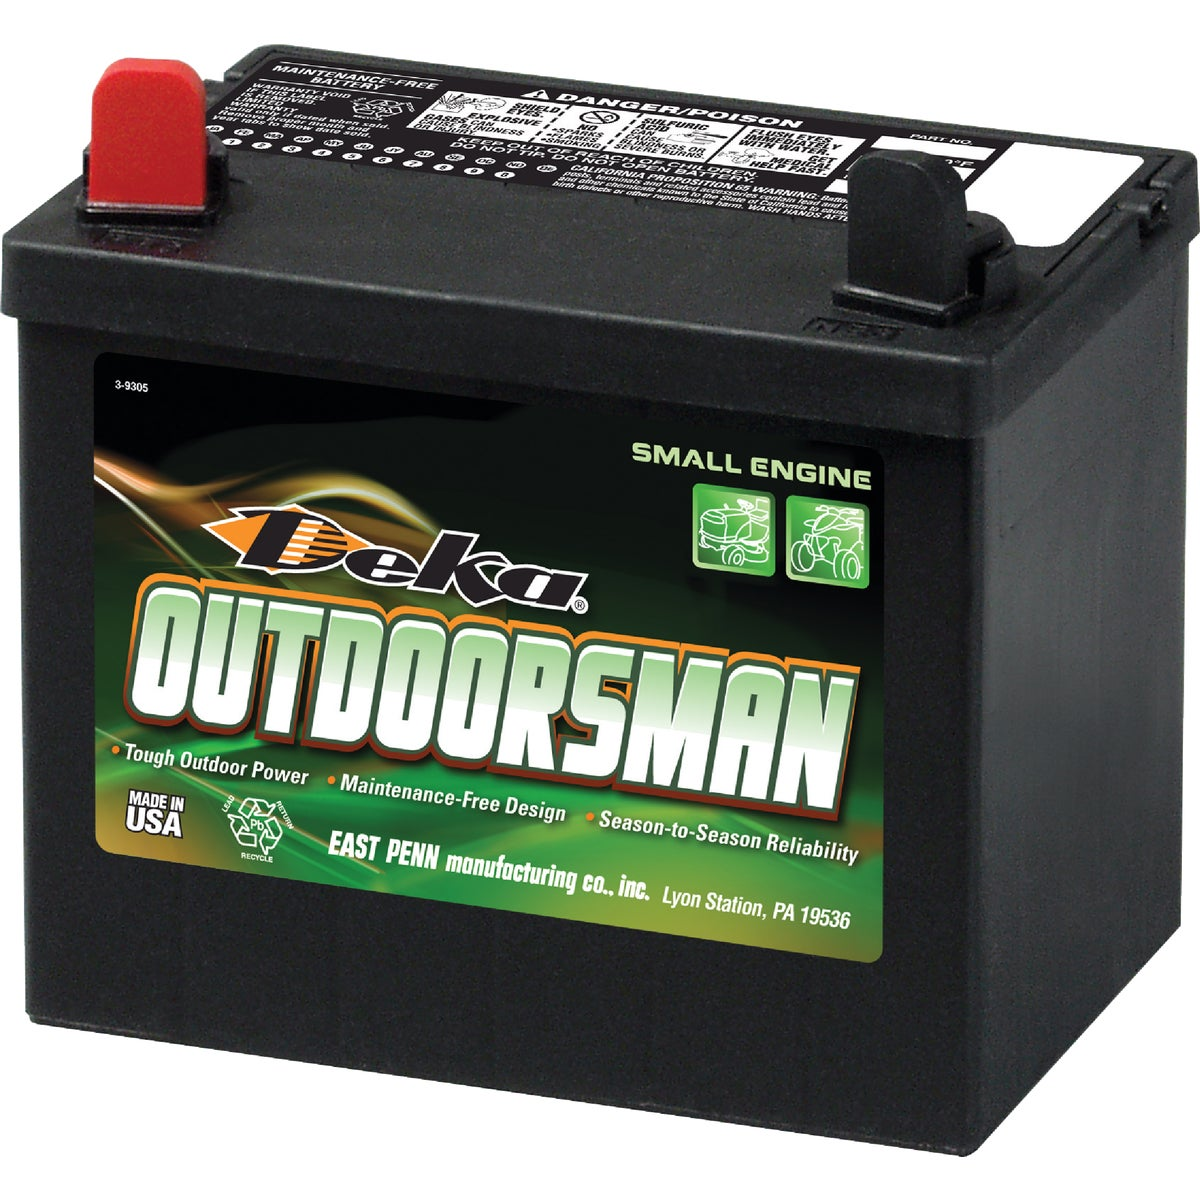 LAWN & GARDEN BATTERY - 10U1L by East Penn Mfg. Co.